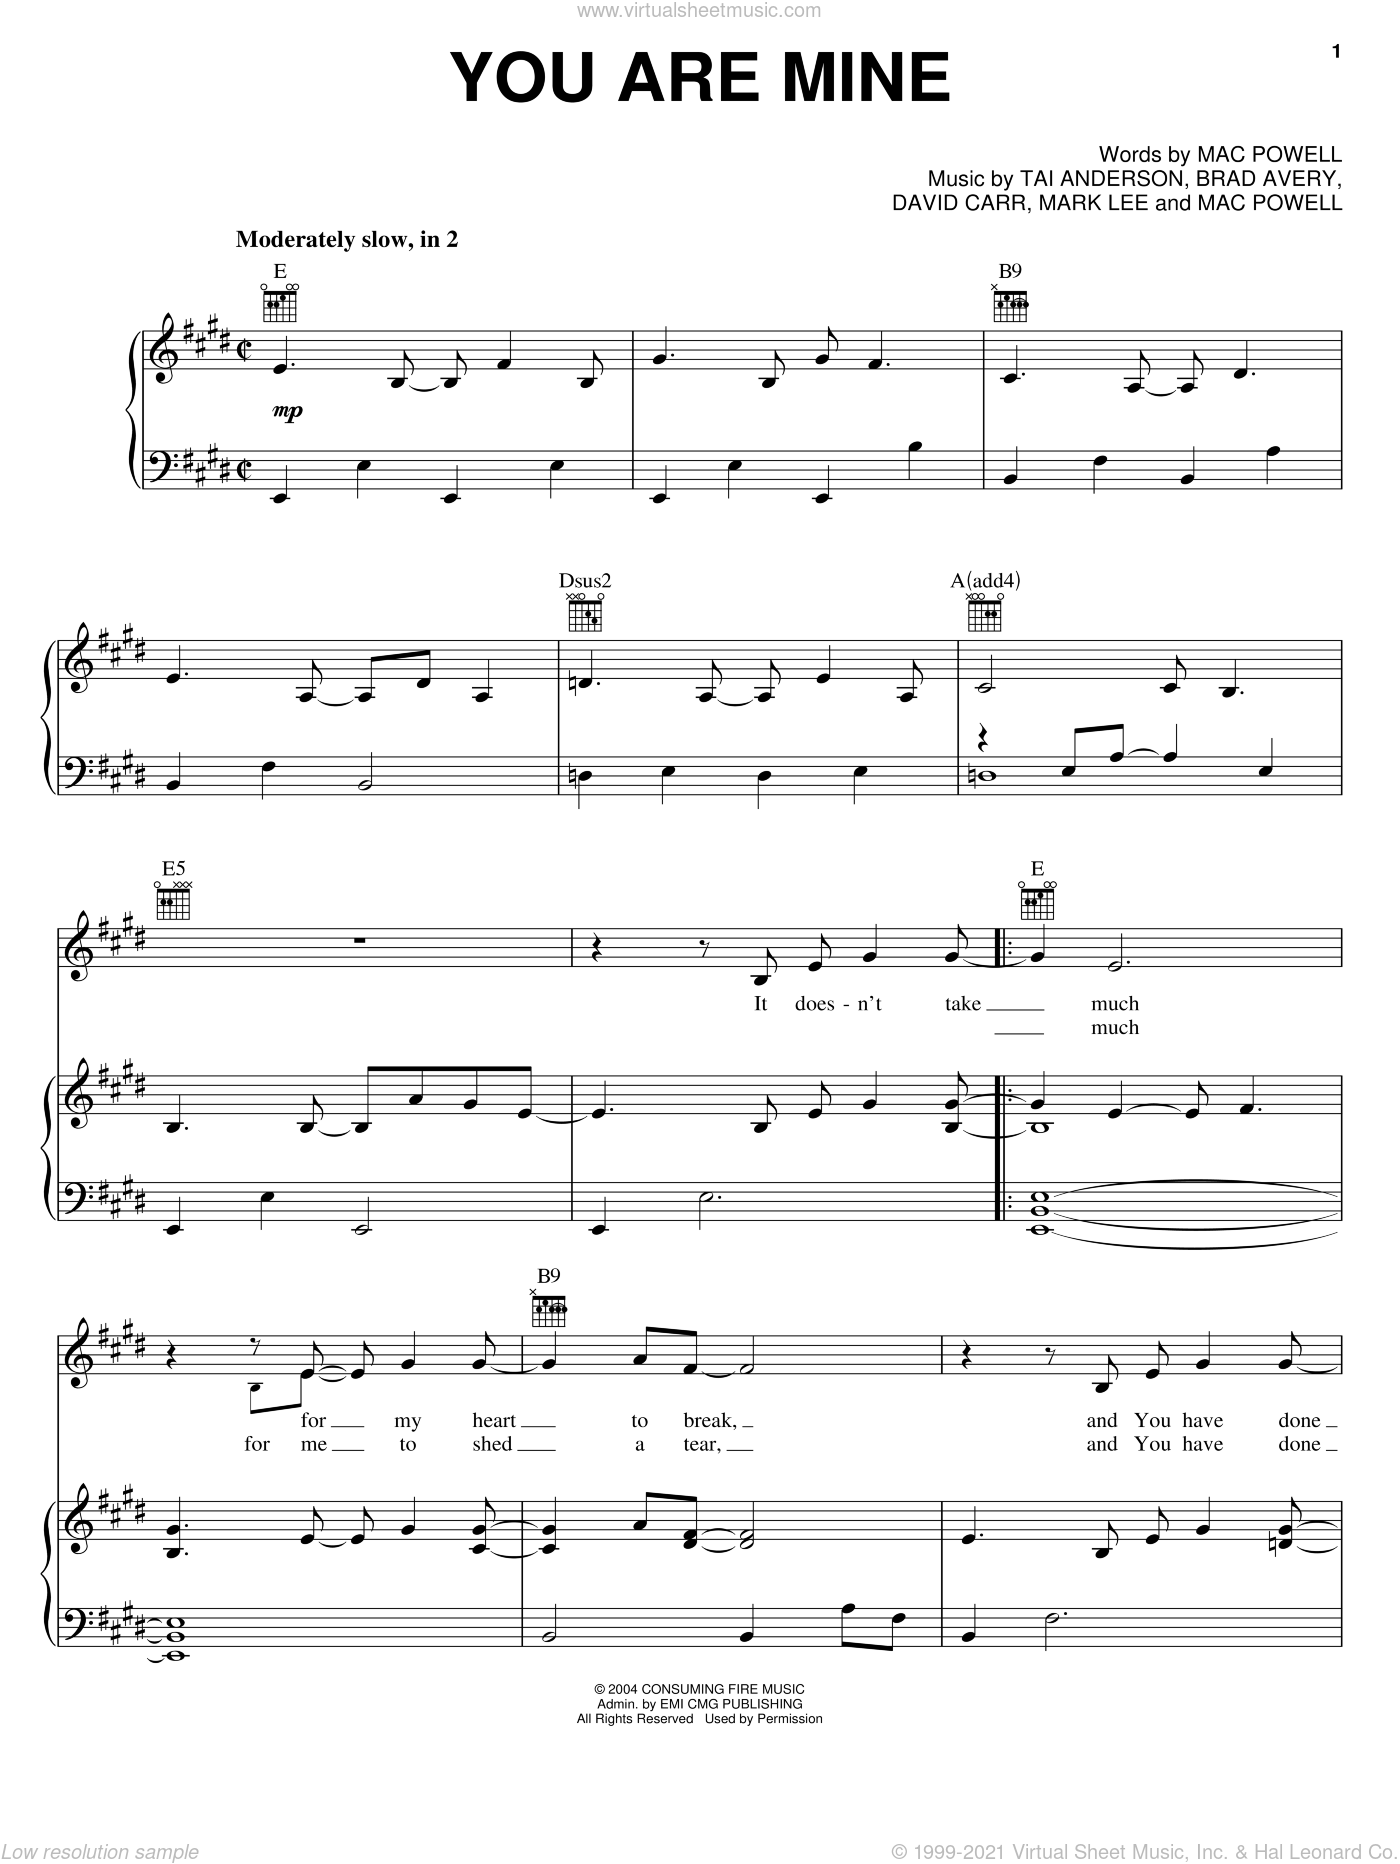 You Are Mine sheet music for voice, piano or guitar by Tai Anderson, Third Day, David Carr, Mac Powell and Mark Lee. Score Image Preview.